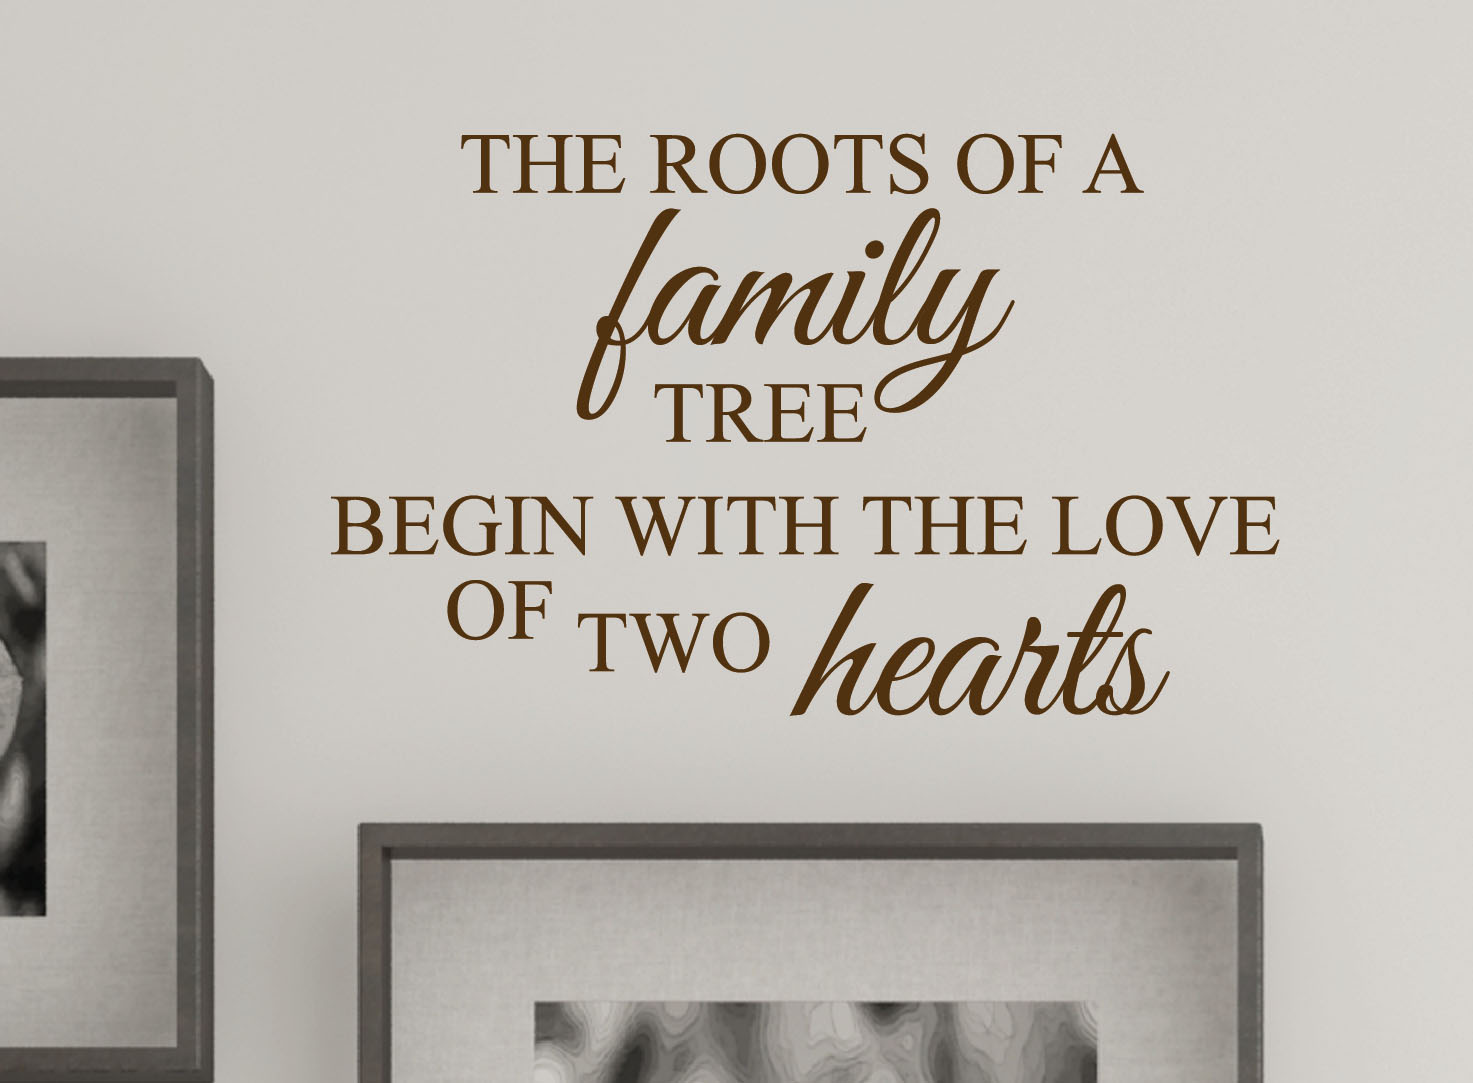 roots-of-a-family-tree-love-wall-decal-quote-picture-frames-brown.jpg